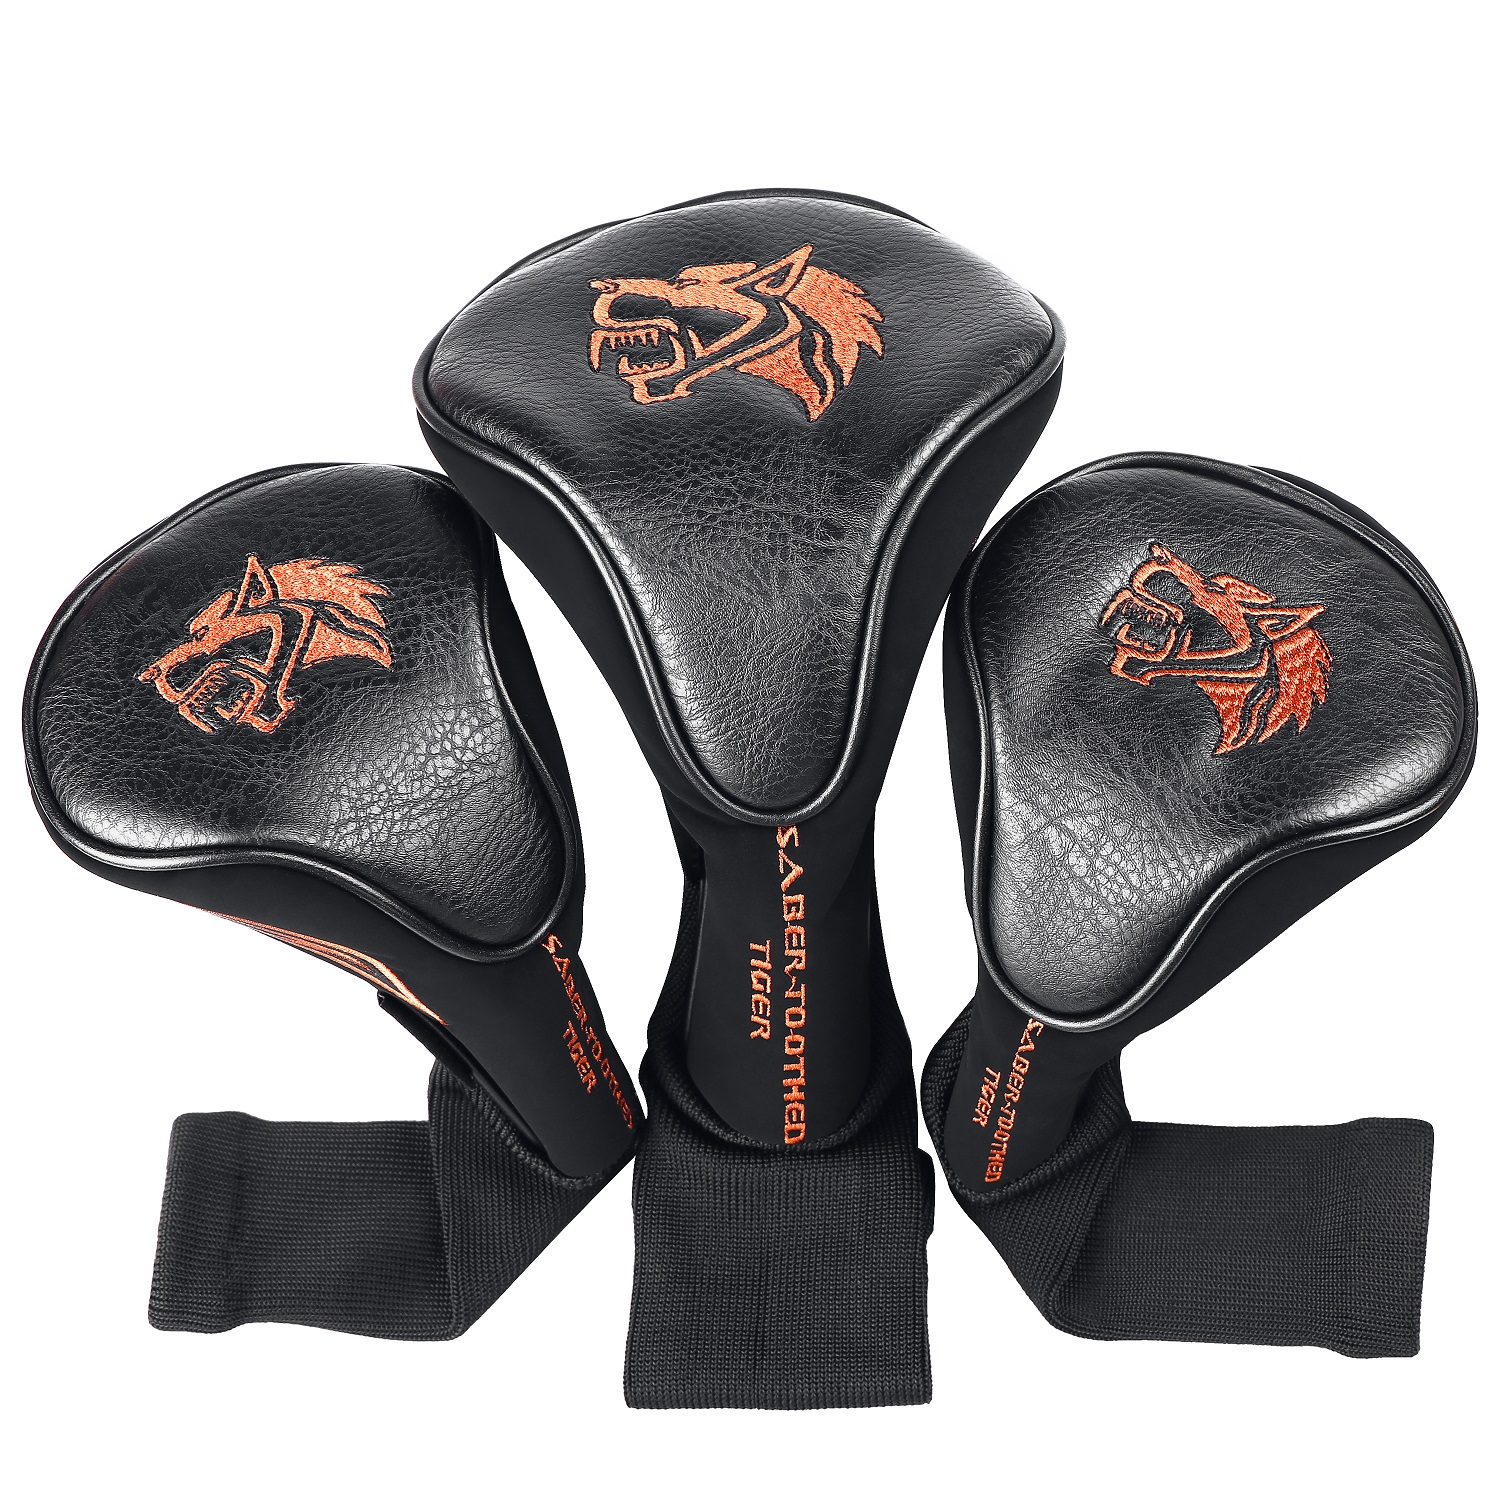 Golf Head Covers Driver 1 3 5 Fairway Woods Headcovers Protective Covers Fits All Fairway And Driver